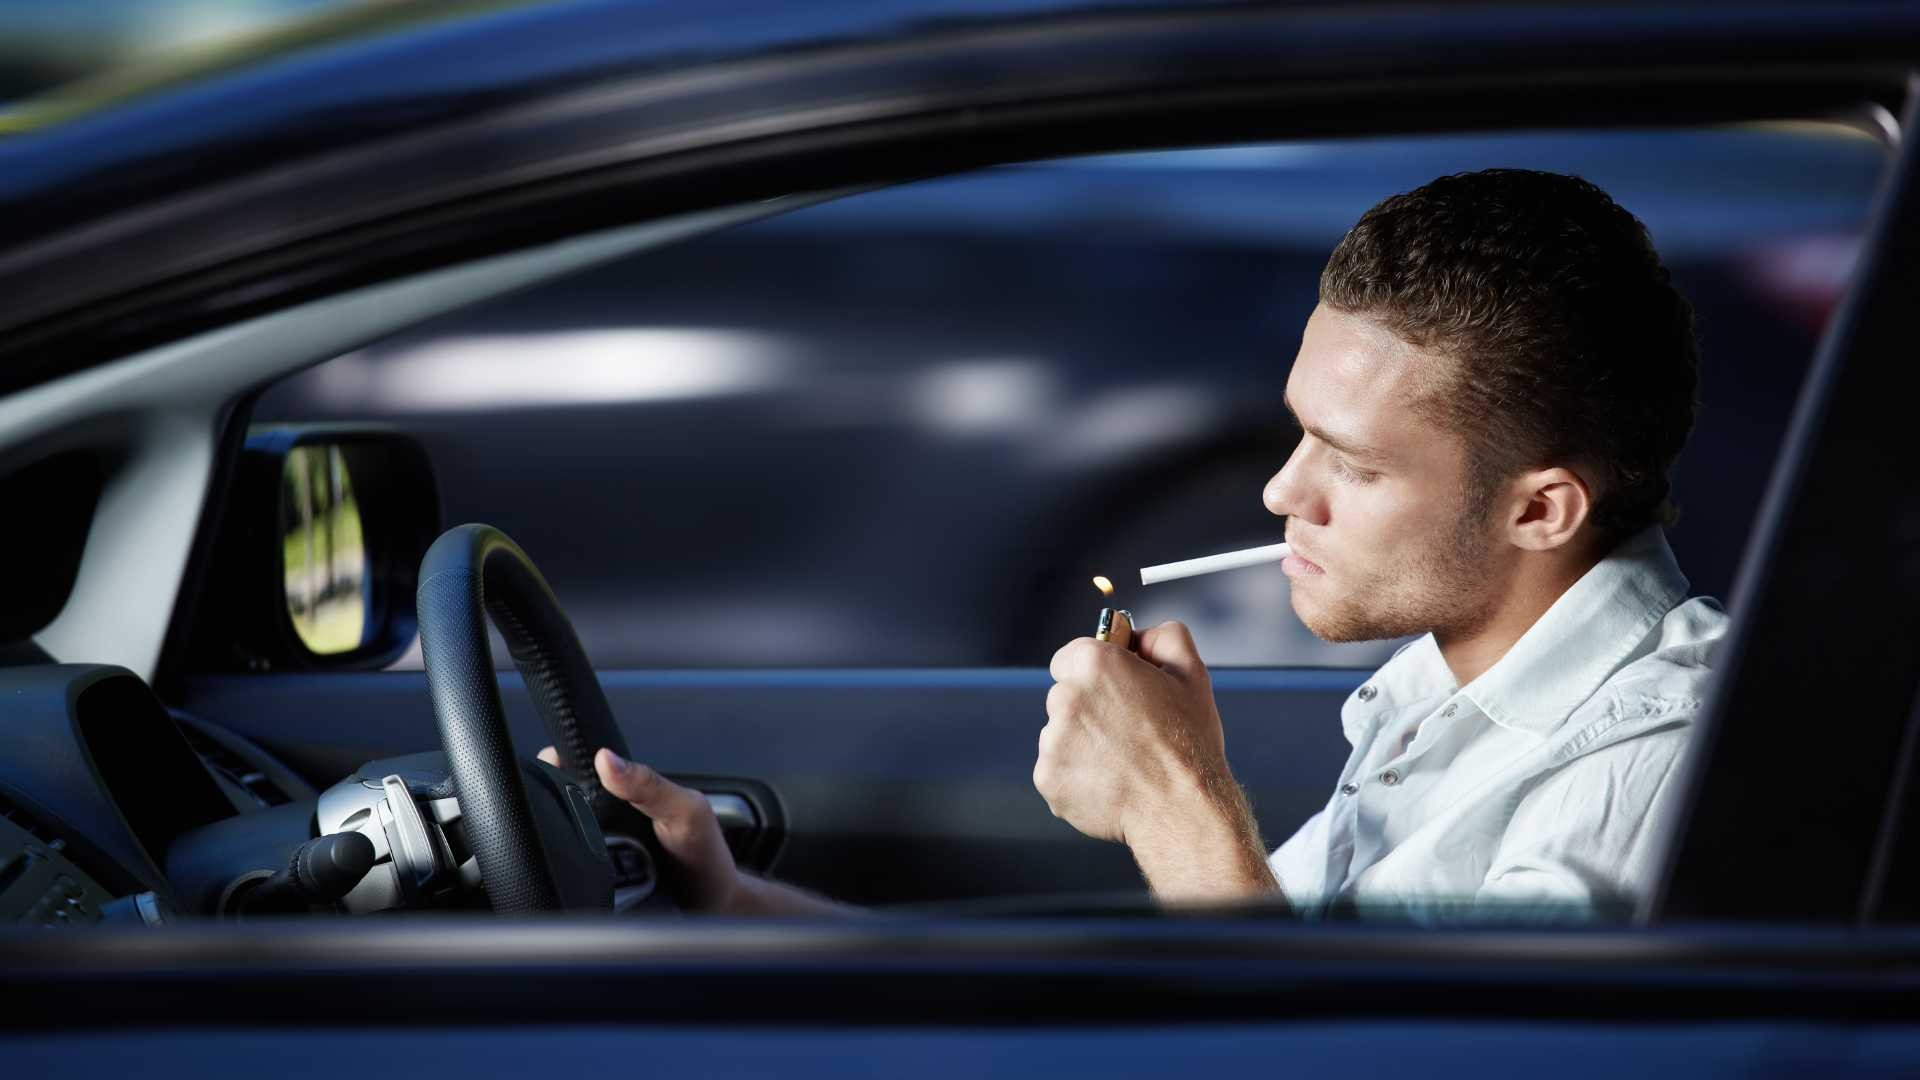 man-lights-cigarette-in-car-while-driving